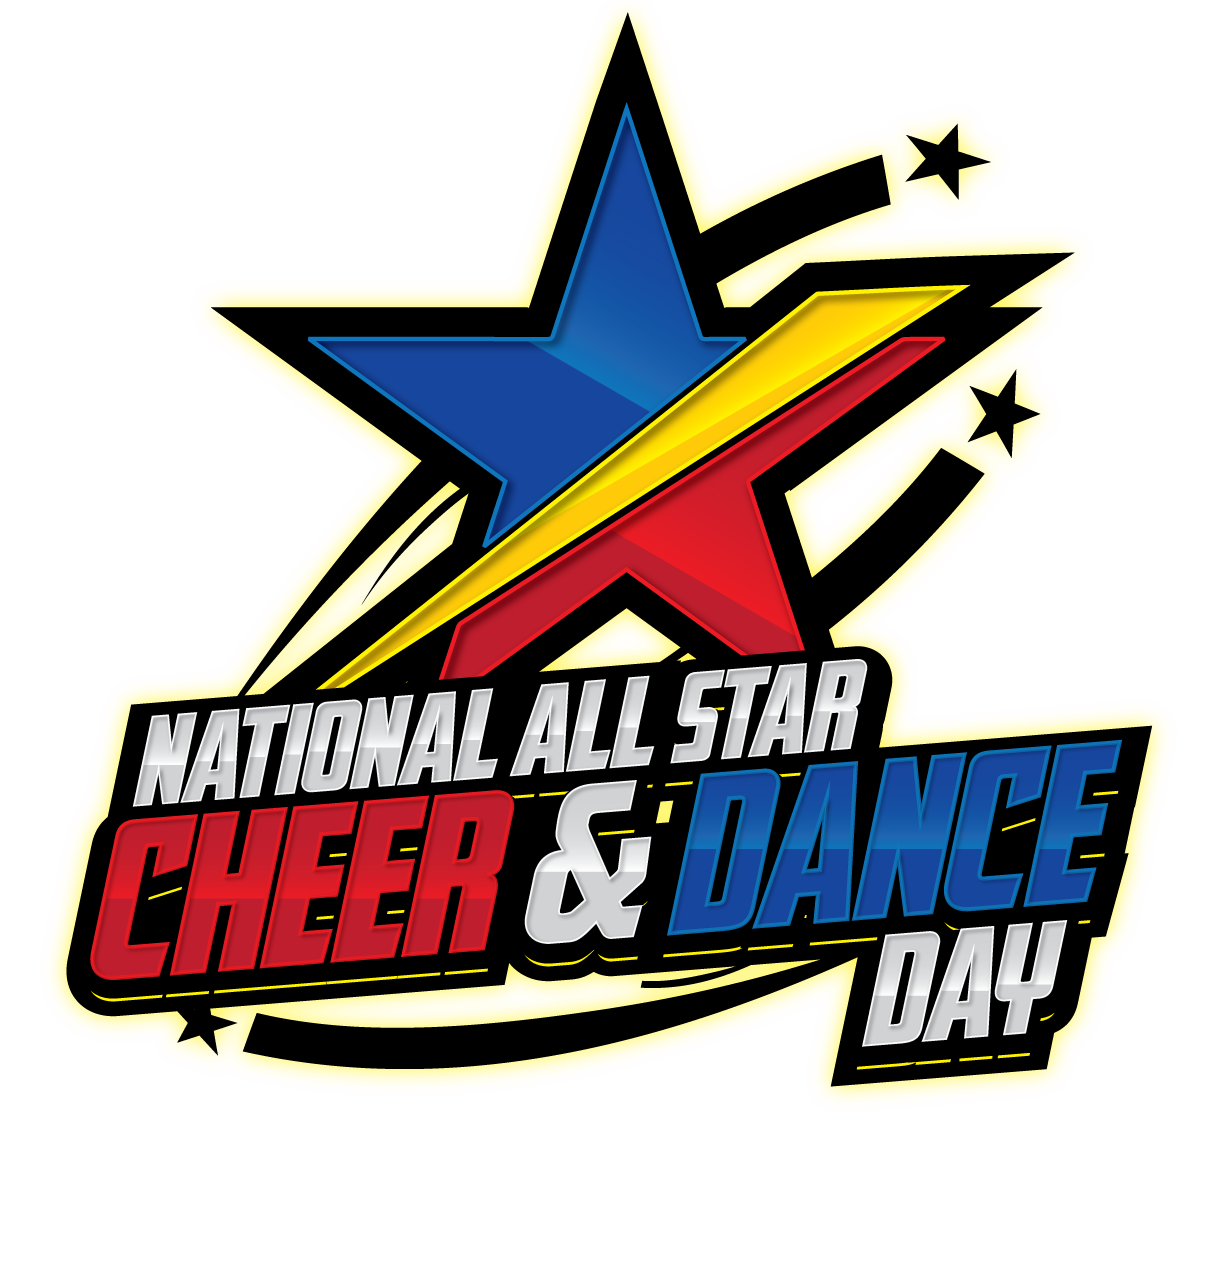 National All Star Cheer & Dance Day